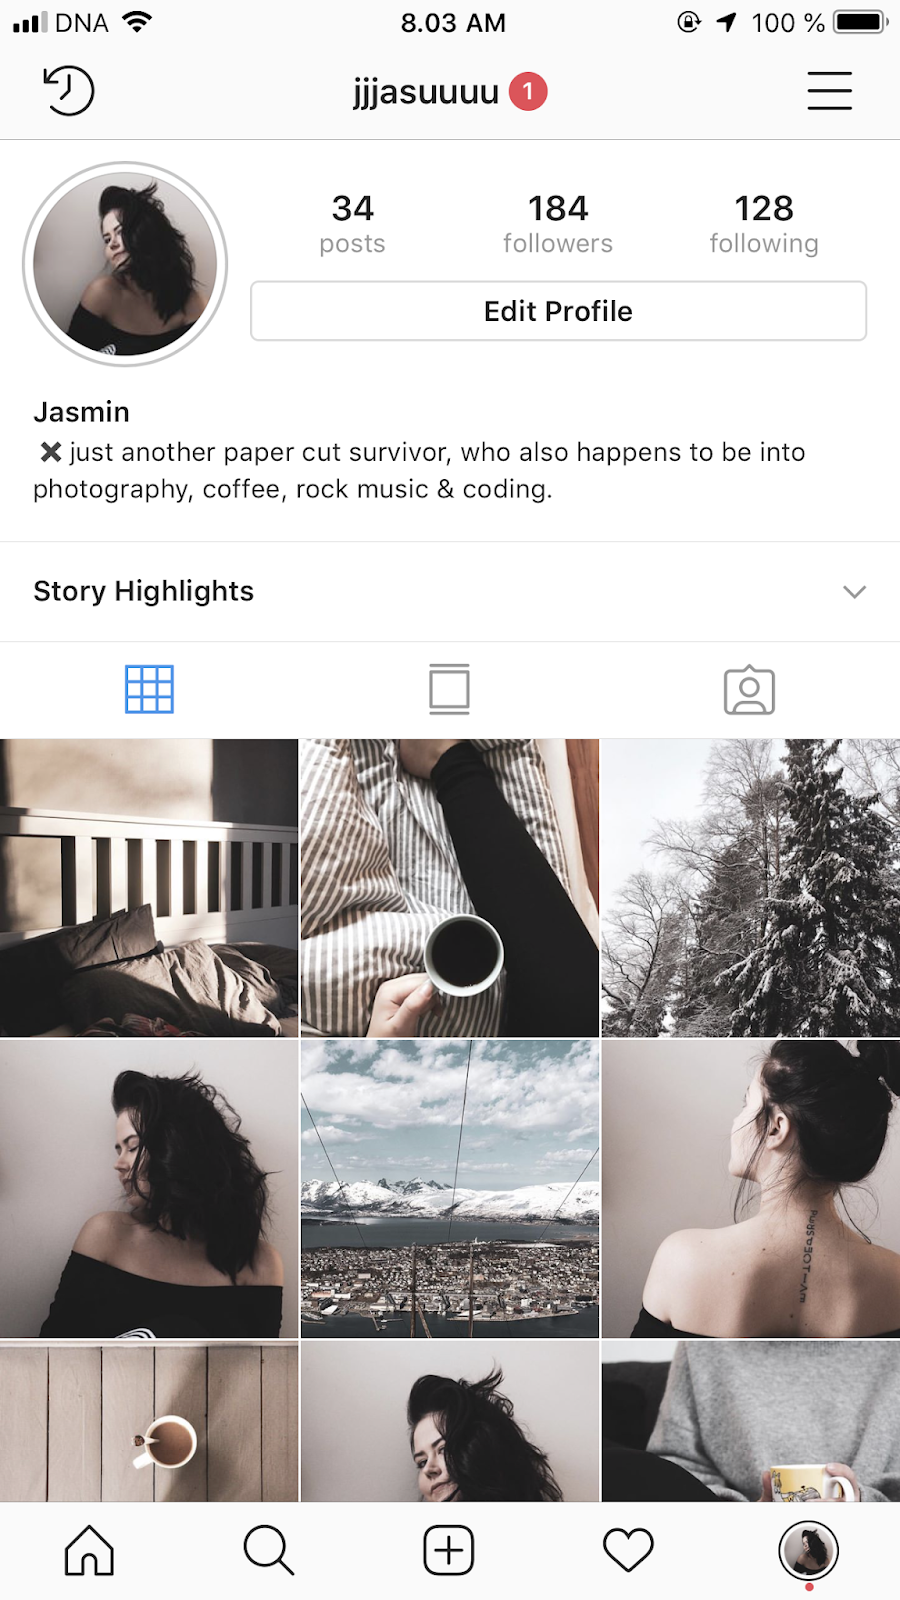 picture of an Instagram profile jjjasuuuu